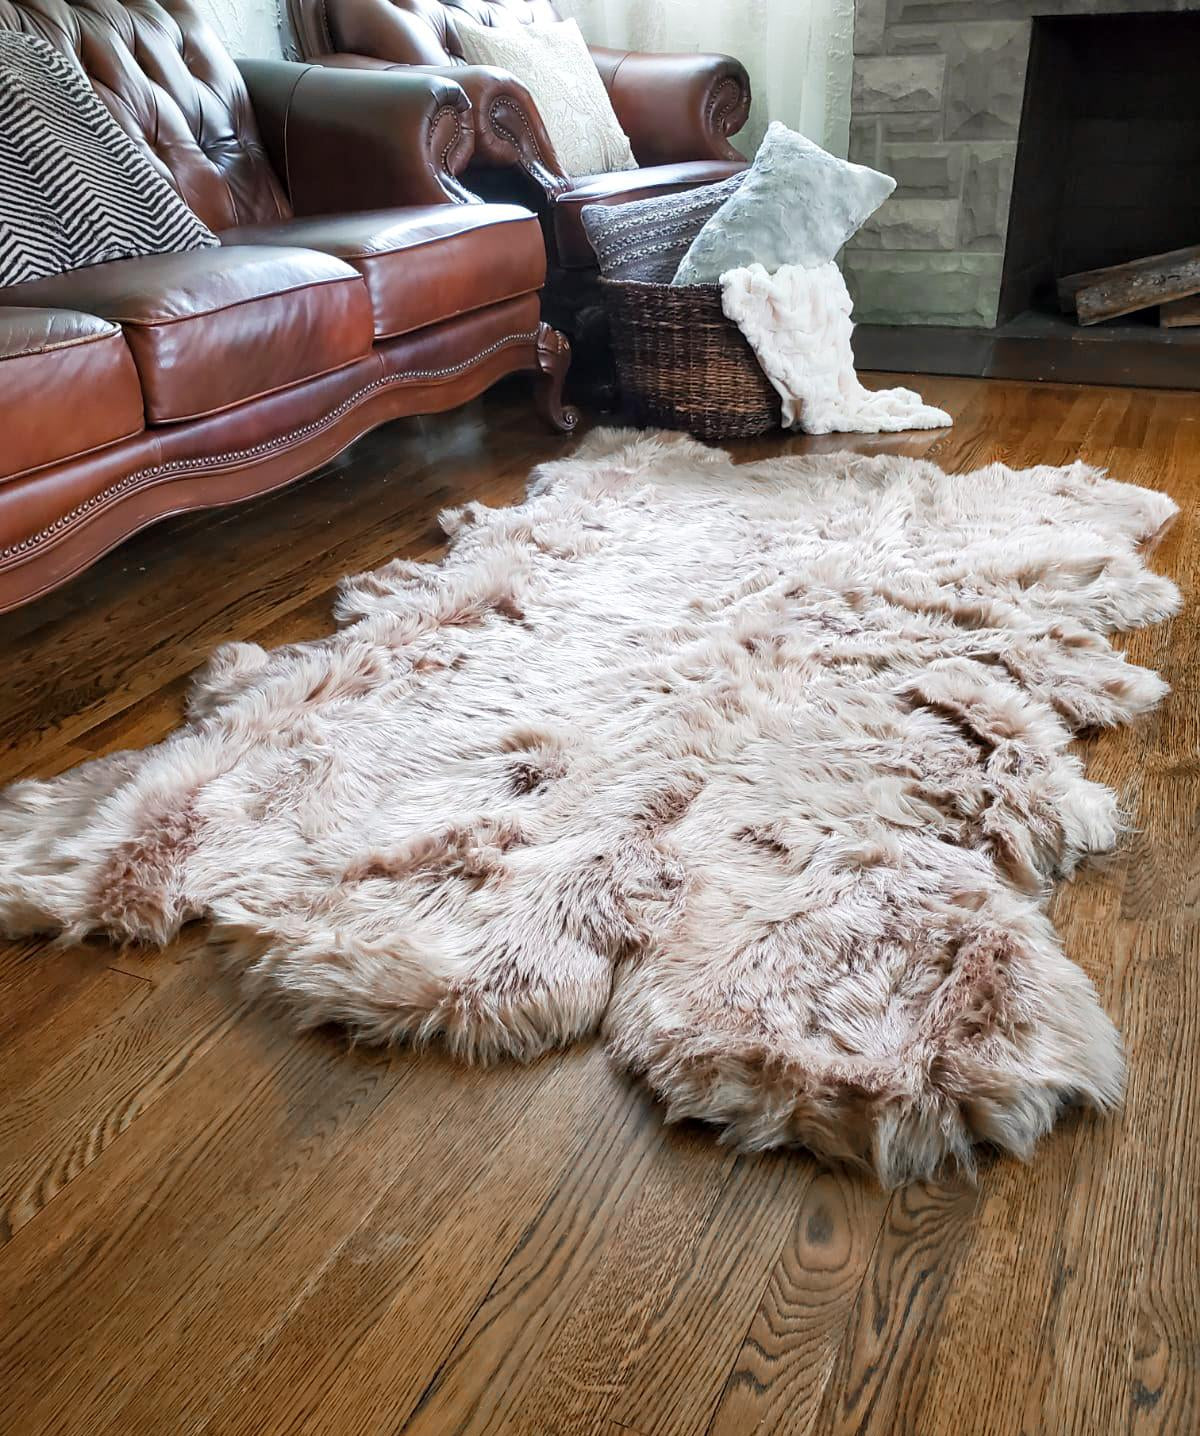 Luxury Faux Fur Sheepskin Soft Area Rug 4-ft x 6-ft with Thick Pile Multi-Use